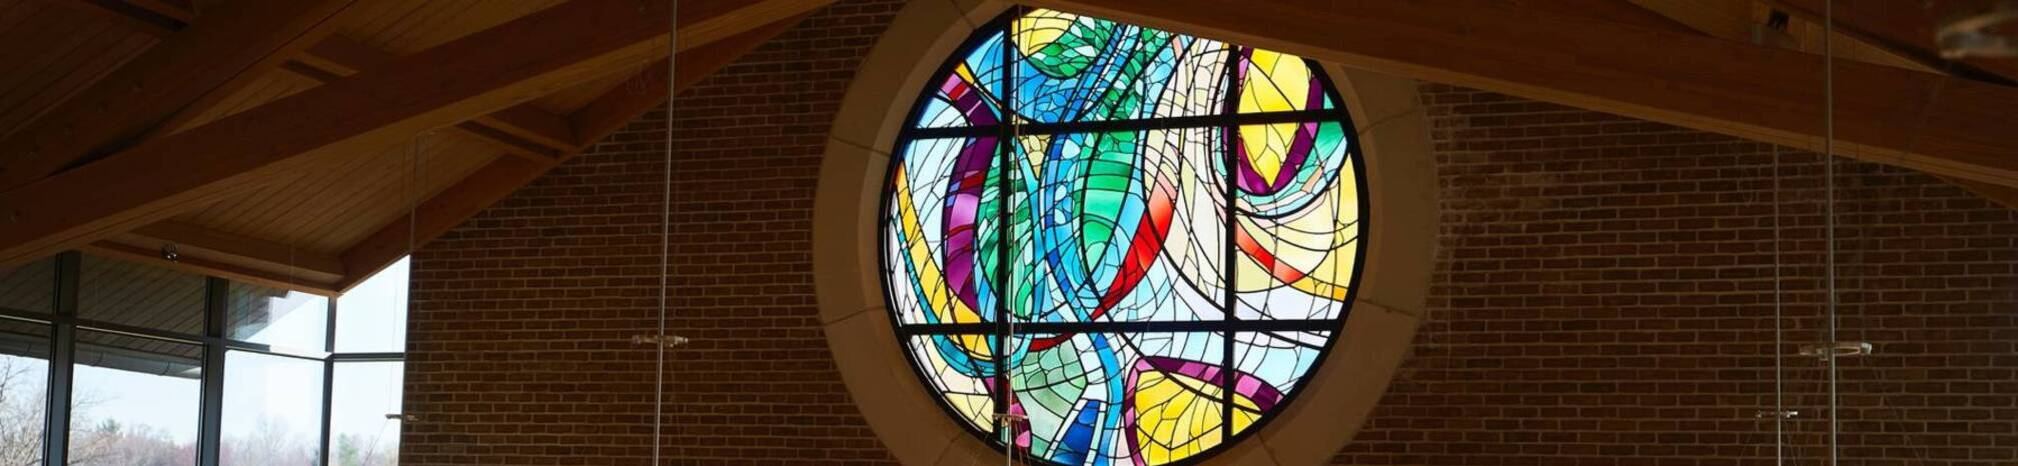 Ursuline college stained glass window2